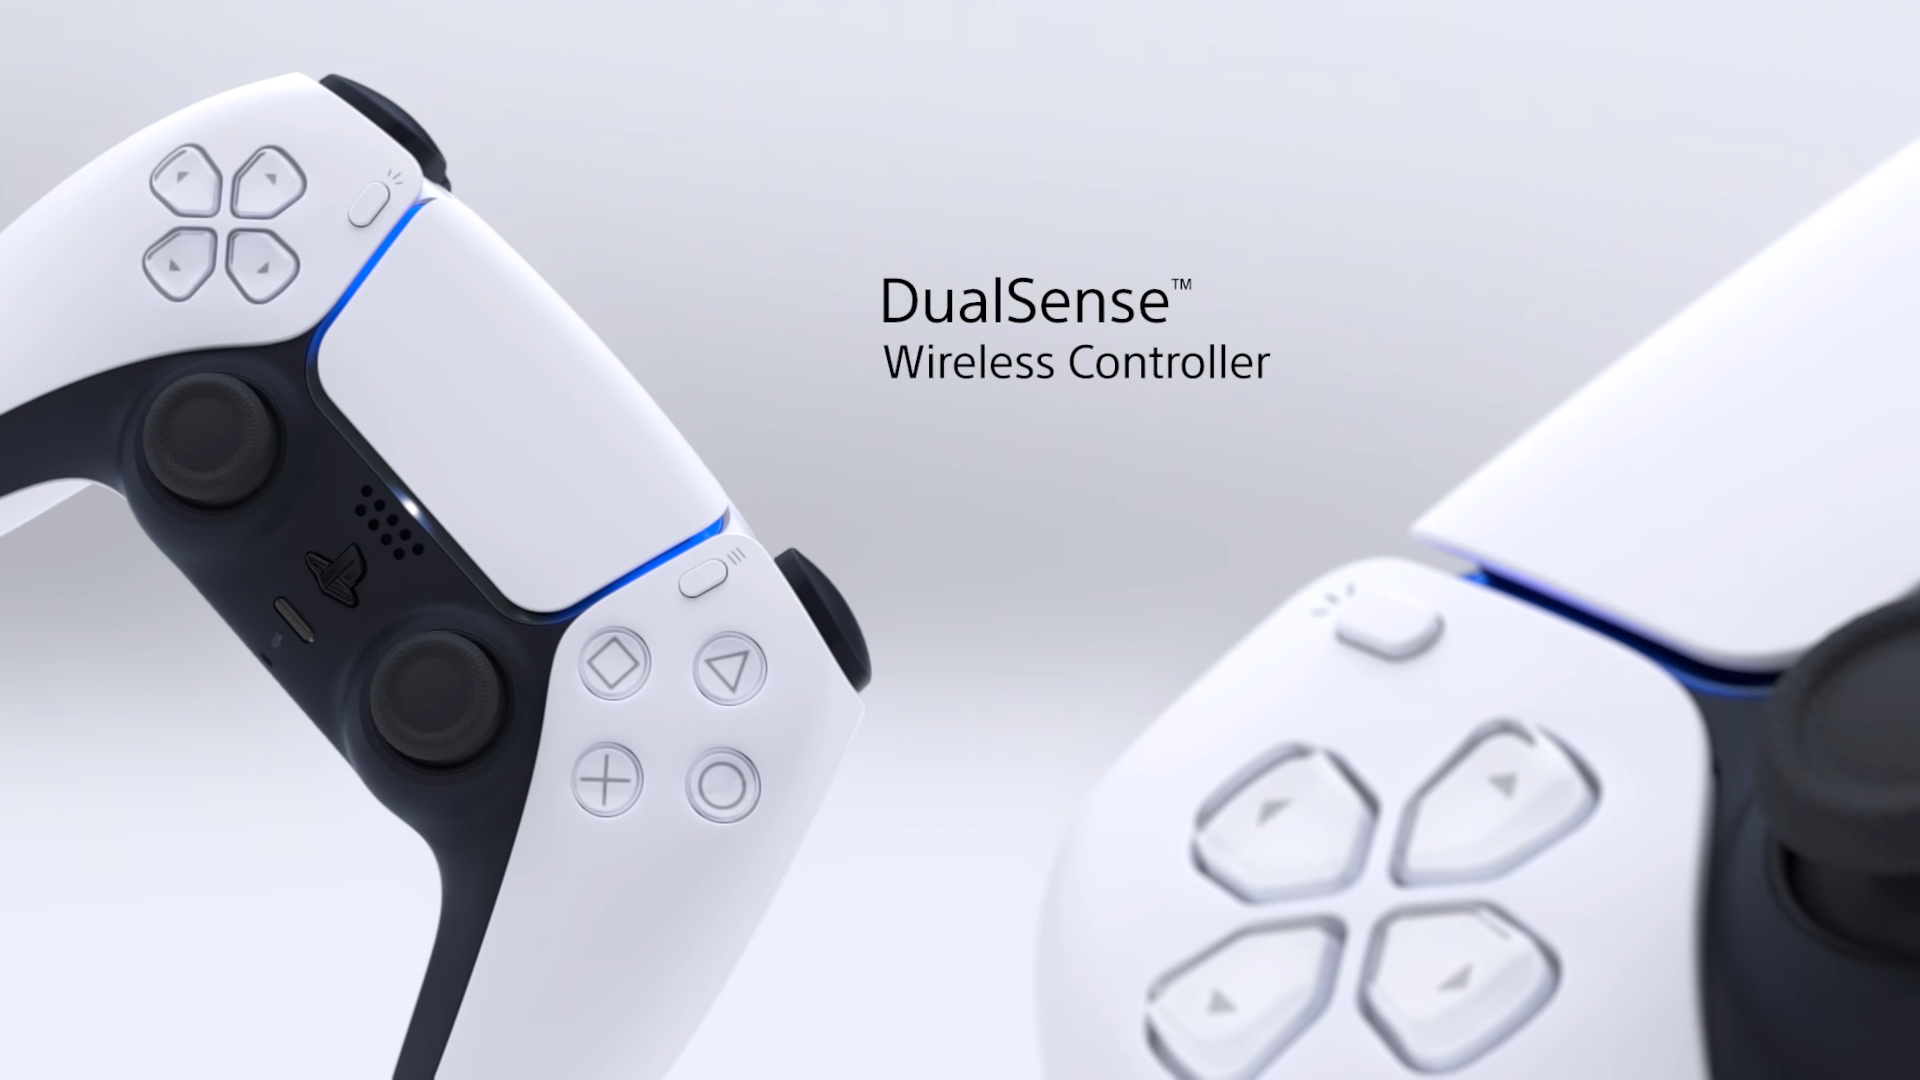 PS5 dualsense controller in white